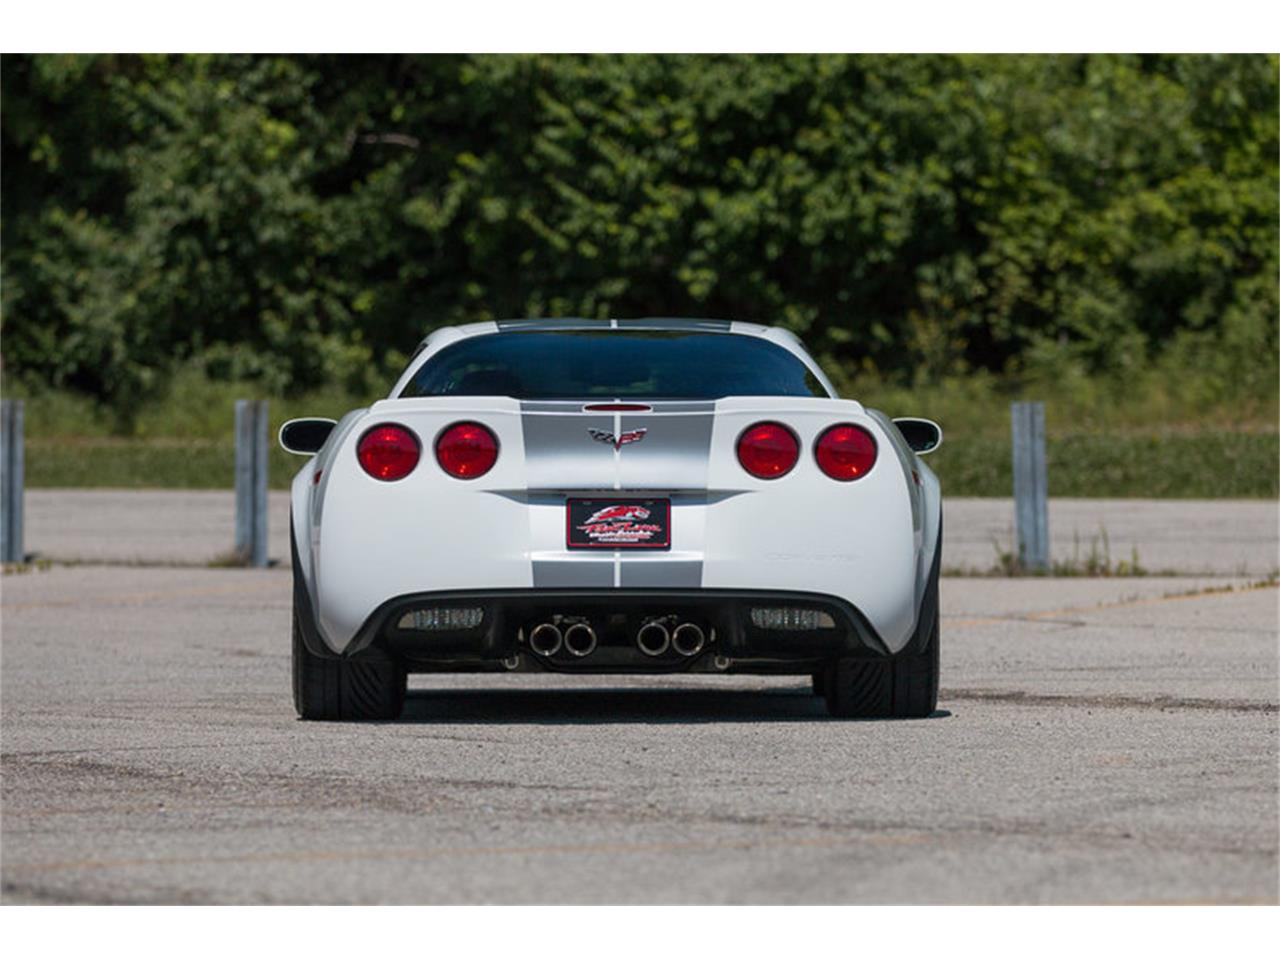 Large Picture of 2013 Chevrolet Corvette Z06 Offered by Fast Lane Classic Cars Inc. - LAO0